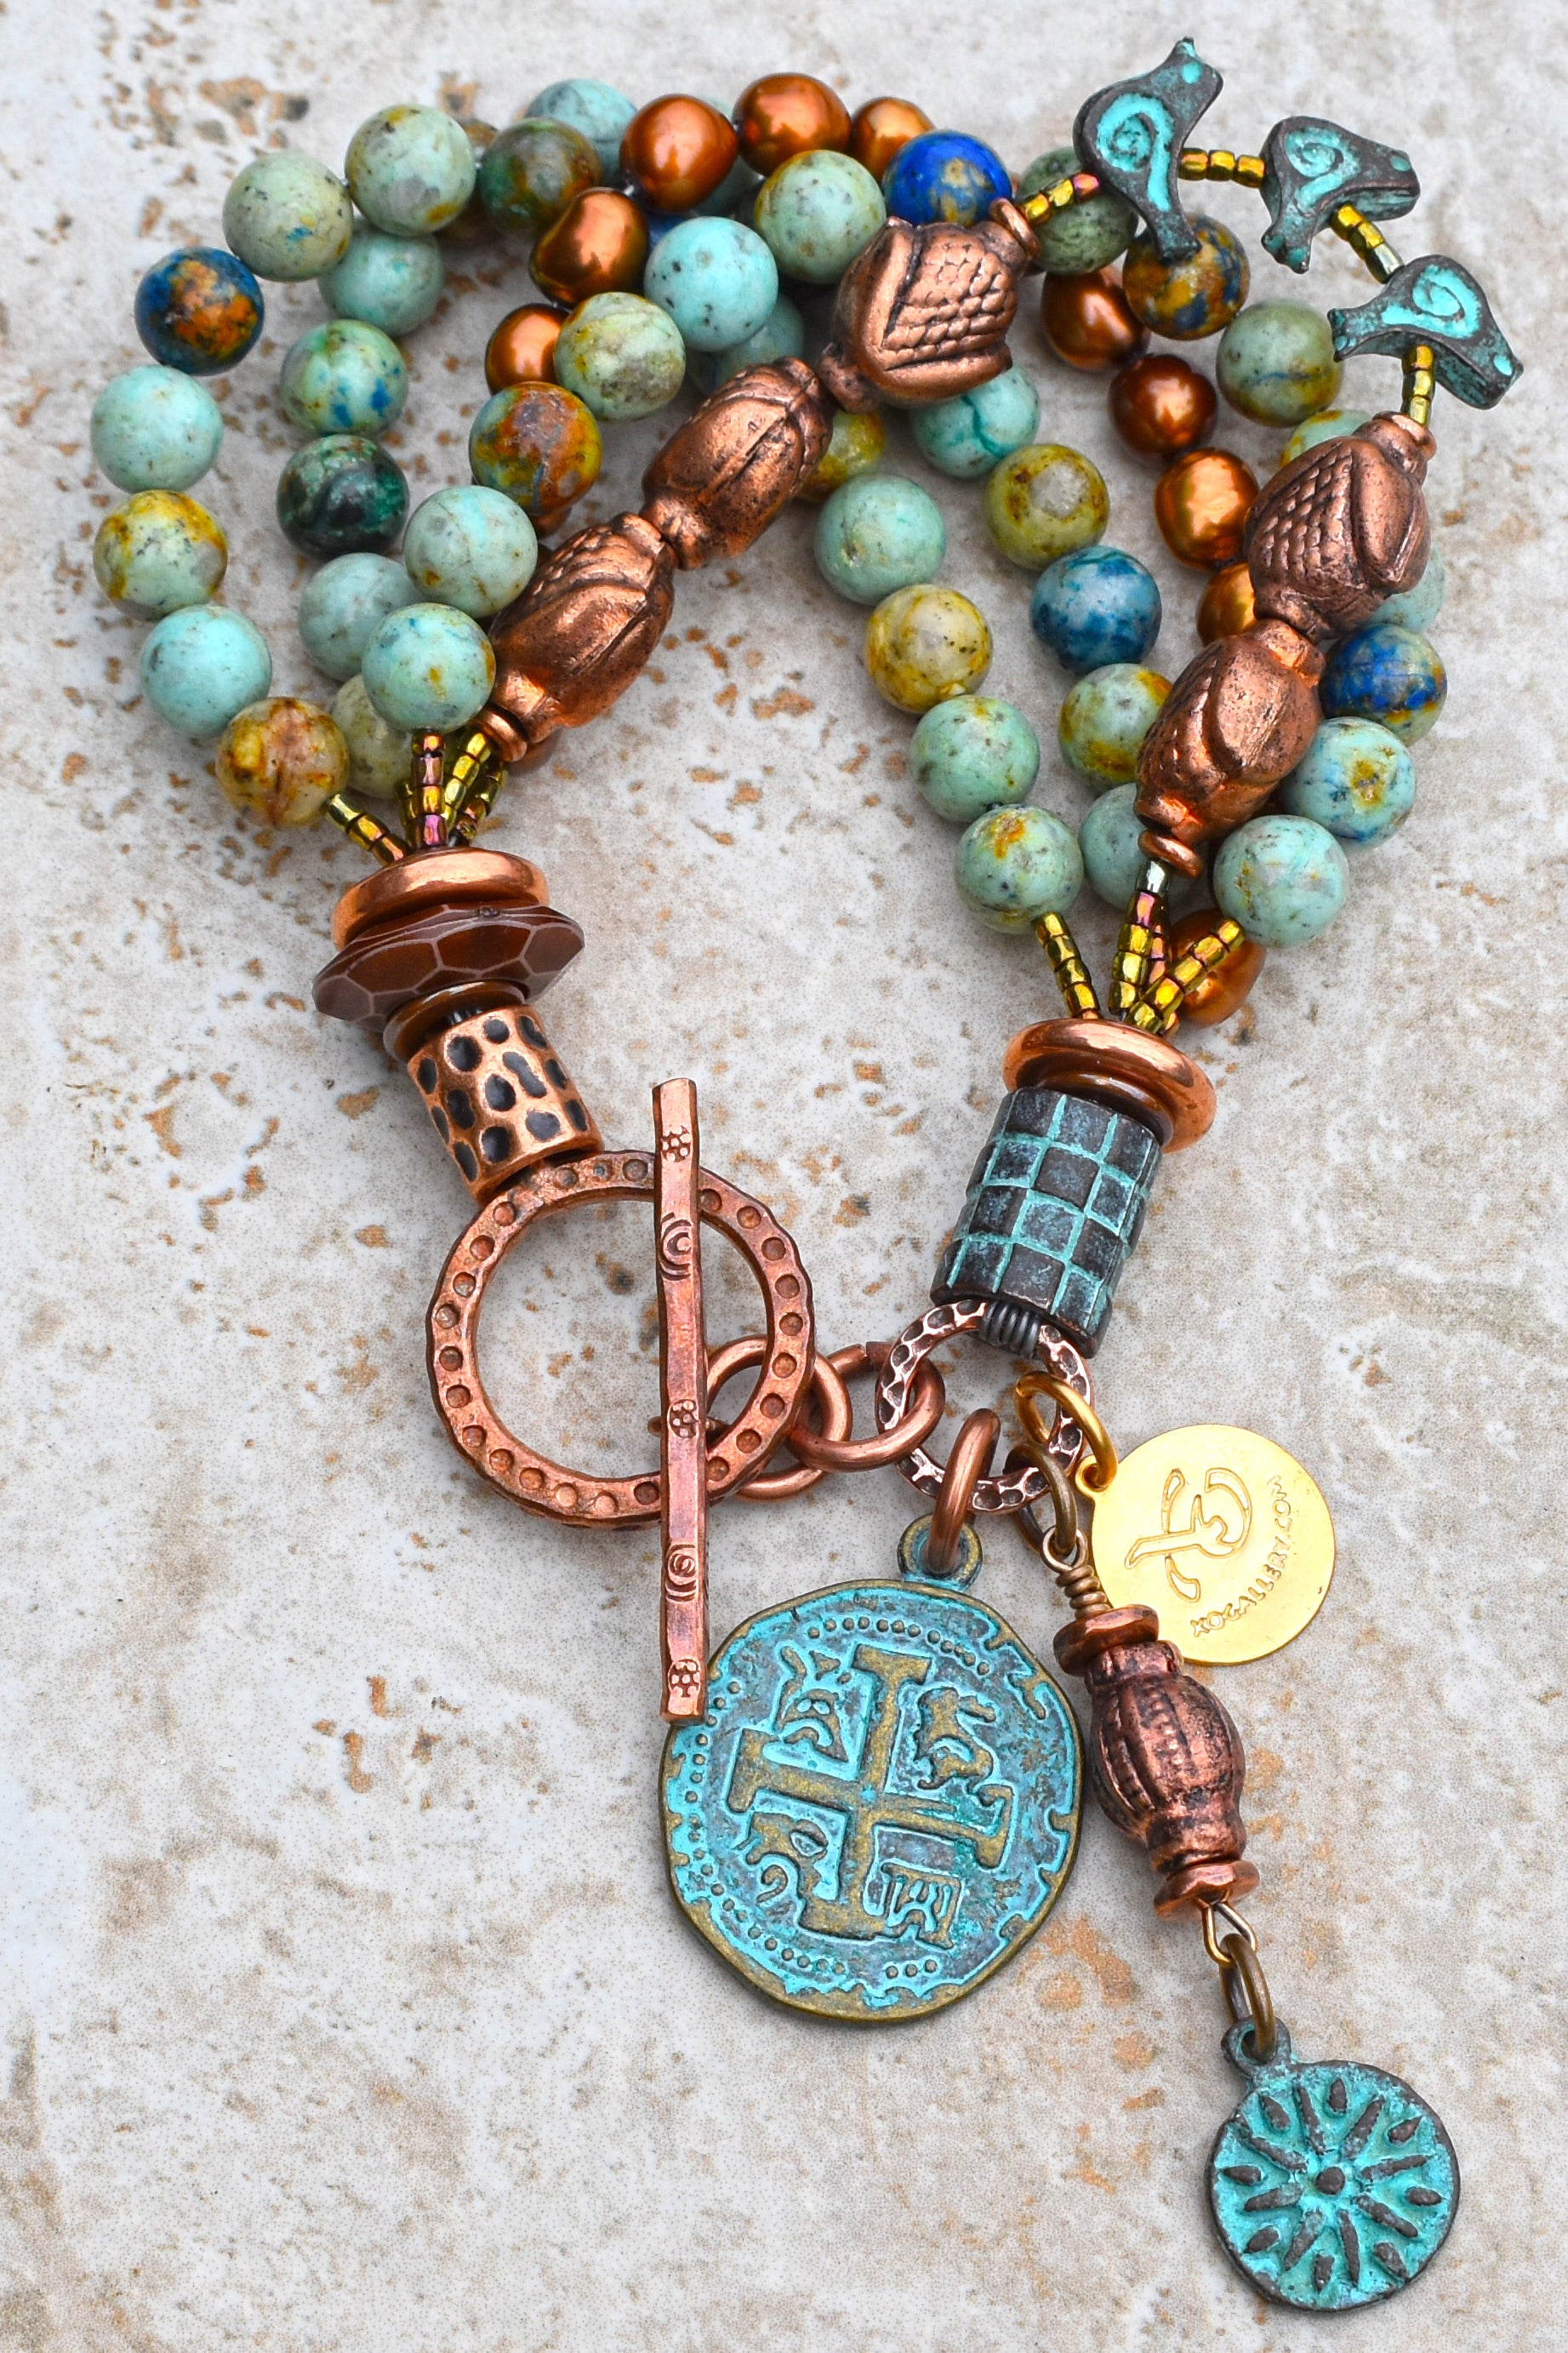 Unique Blue Brown Jasper, Copper Pearl and Verdigris Charm Bracelet